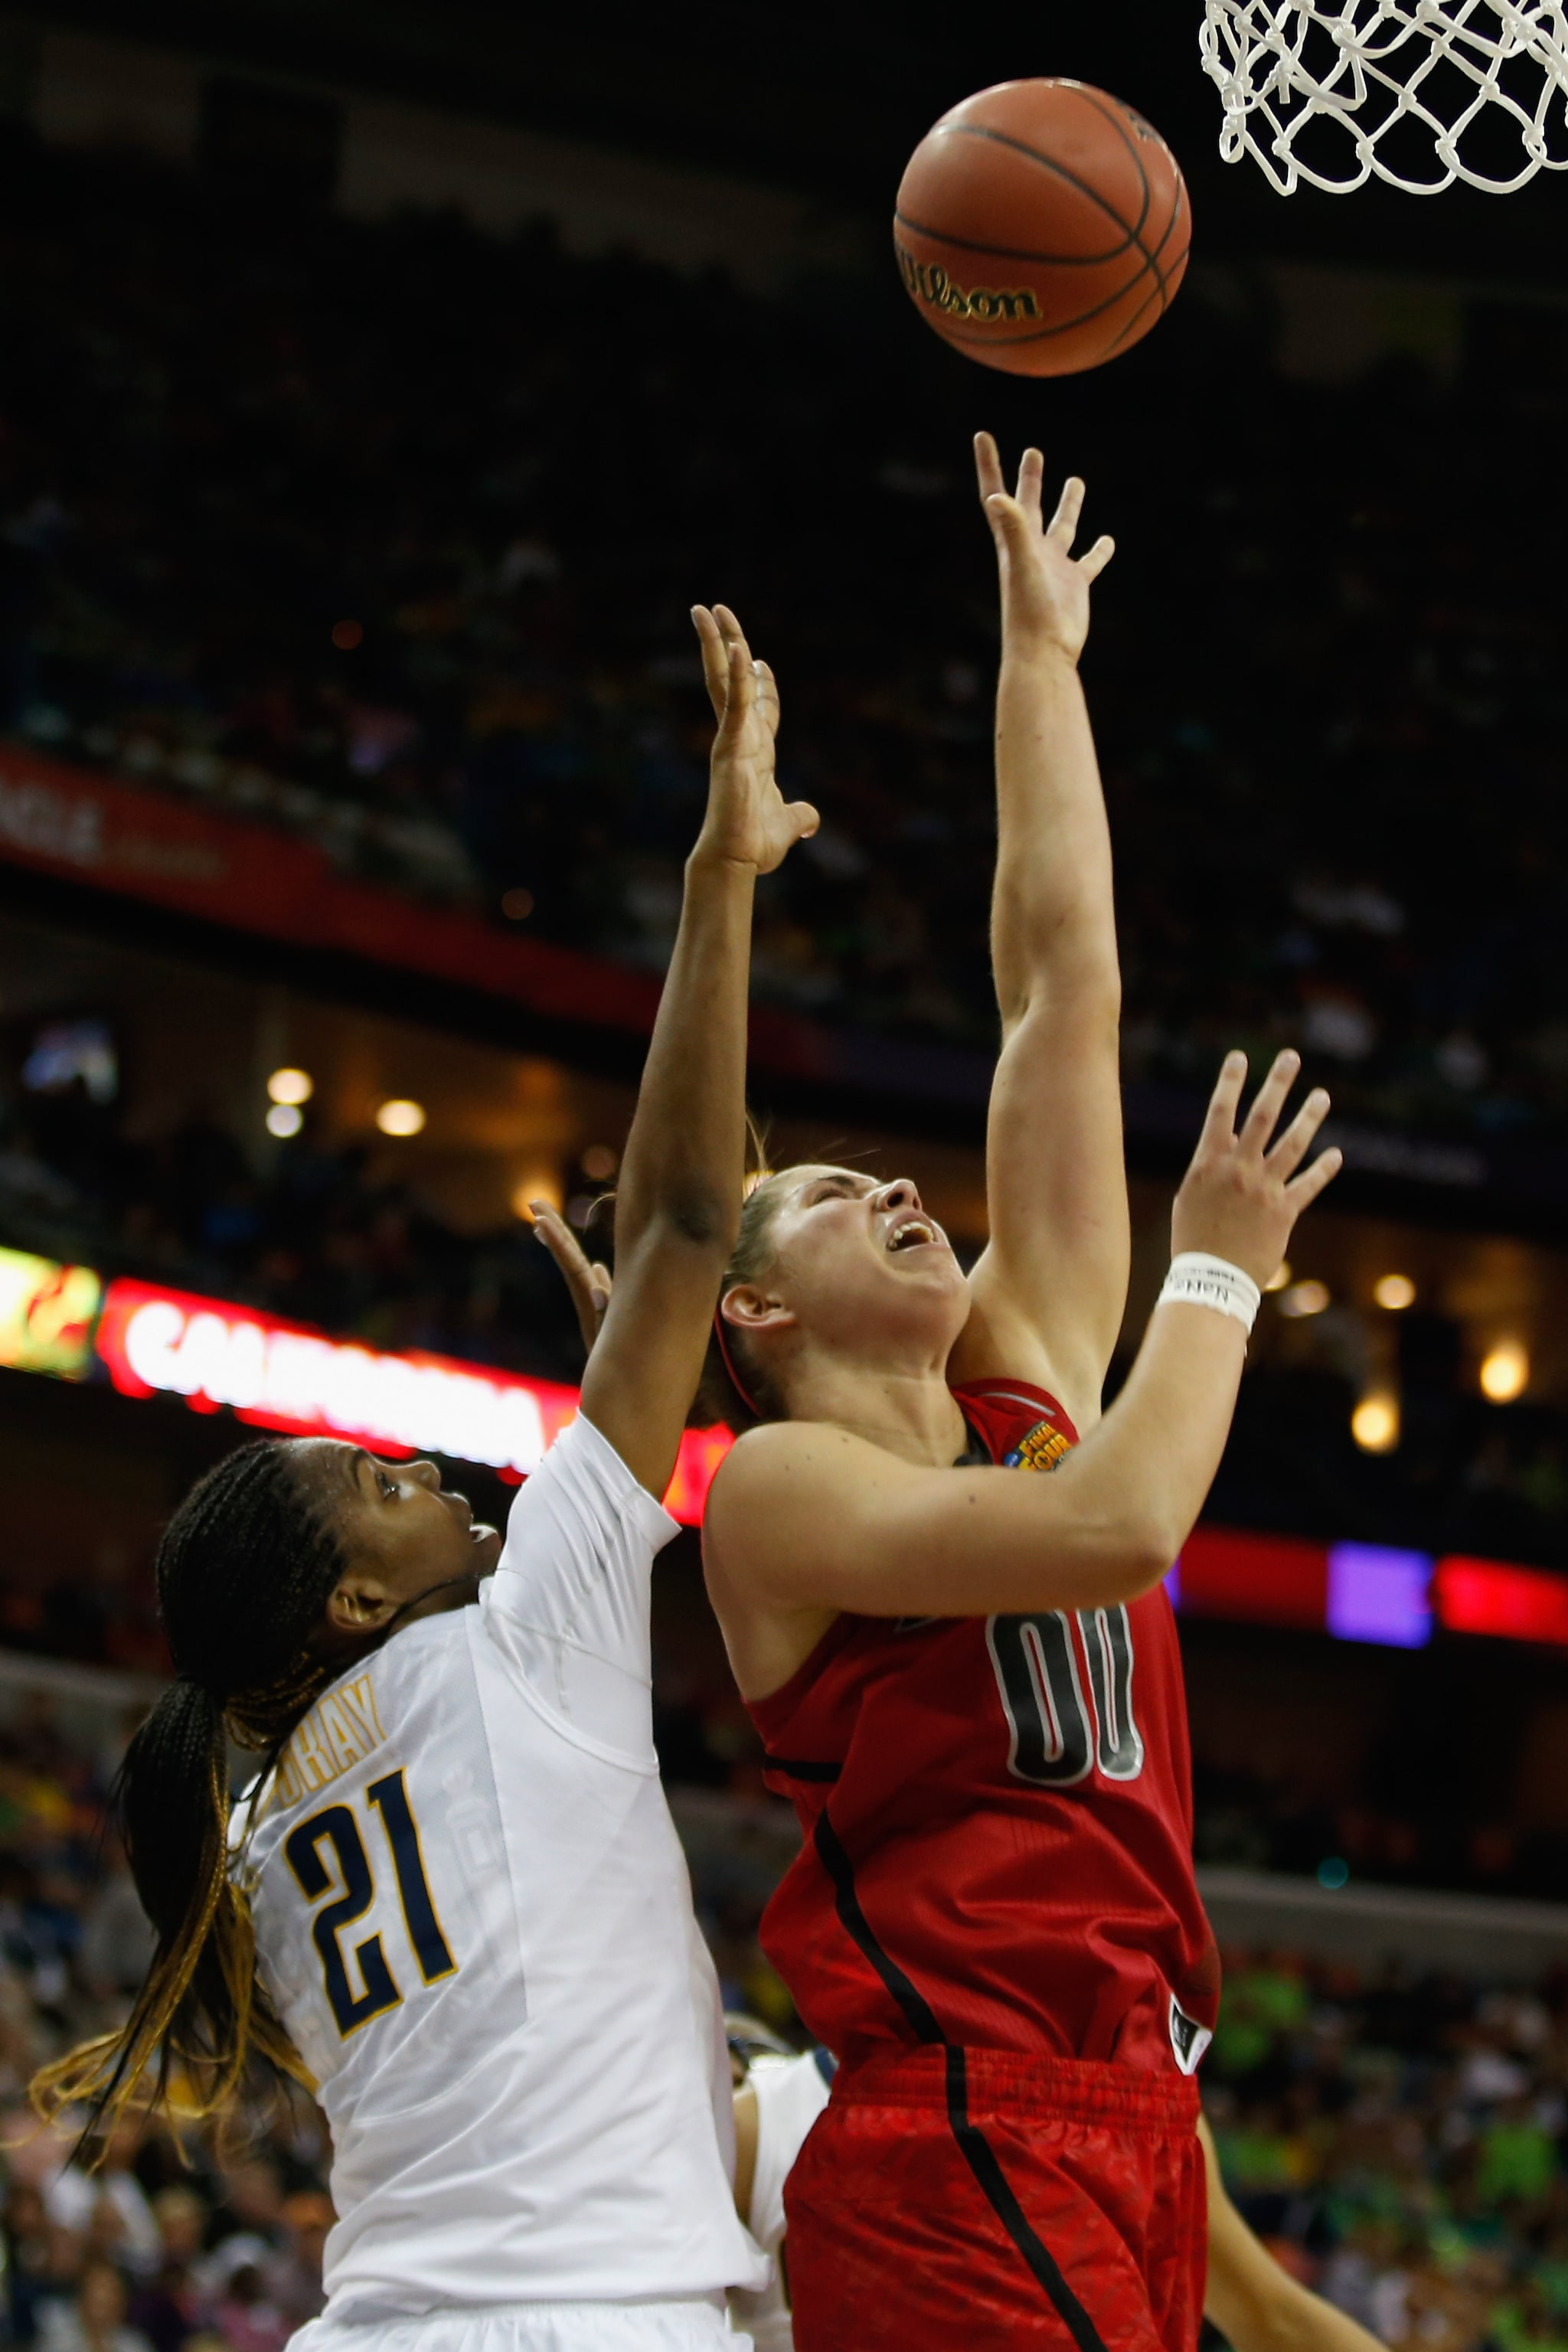 NEW ORLEANS, LA - APRIL 07:  Sara Hammond #00 of the Louisville Cardinals shoots the ball over Reshanda Gray #21 of the California Golden Bears during the National Semifinal game of the 2013 NCAA Division I Women's Basketball Championship at the New Orleans Arena on April 7, 2013 in New Orleans, Louisiana.  (Photo by Chris Graythen/Getty Images)